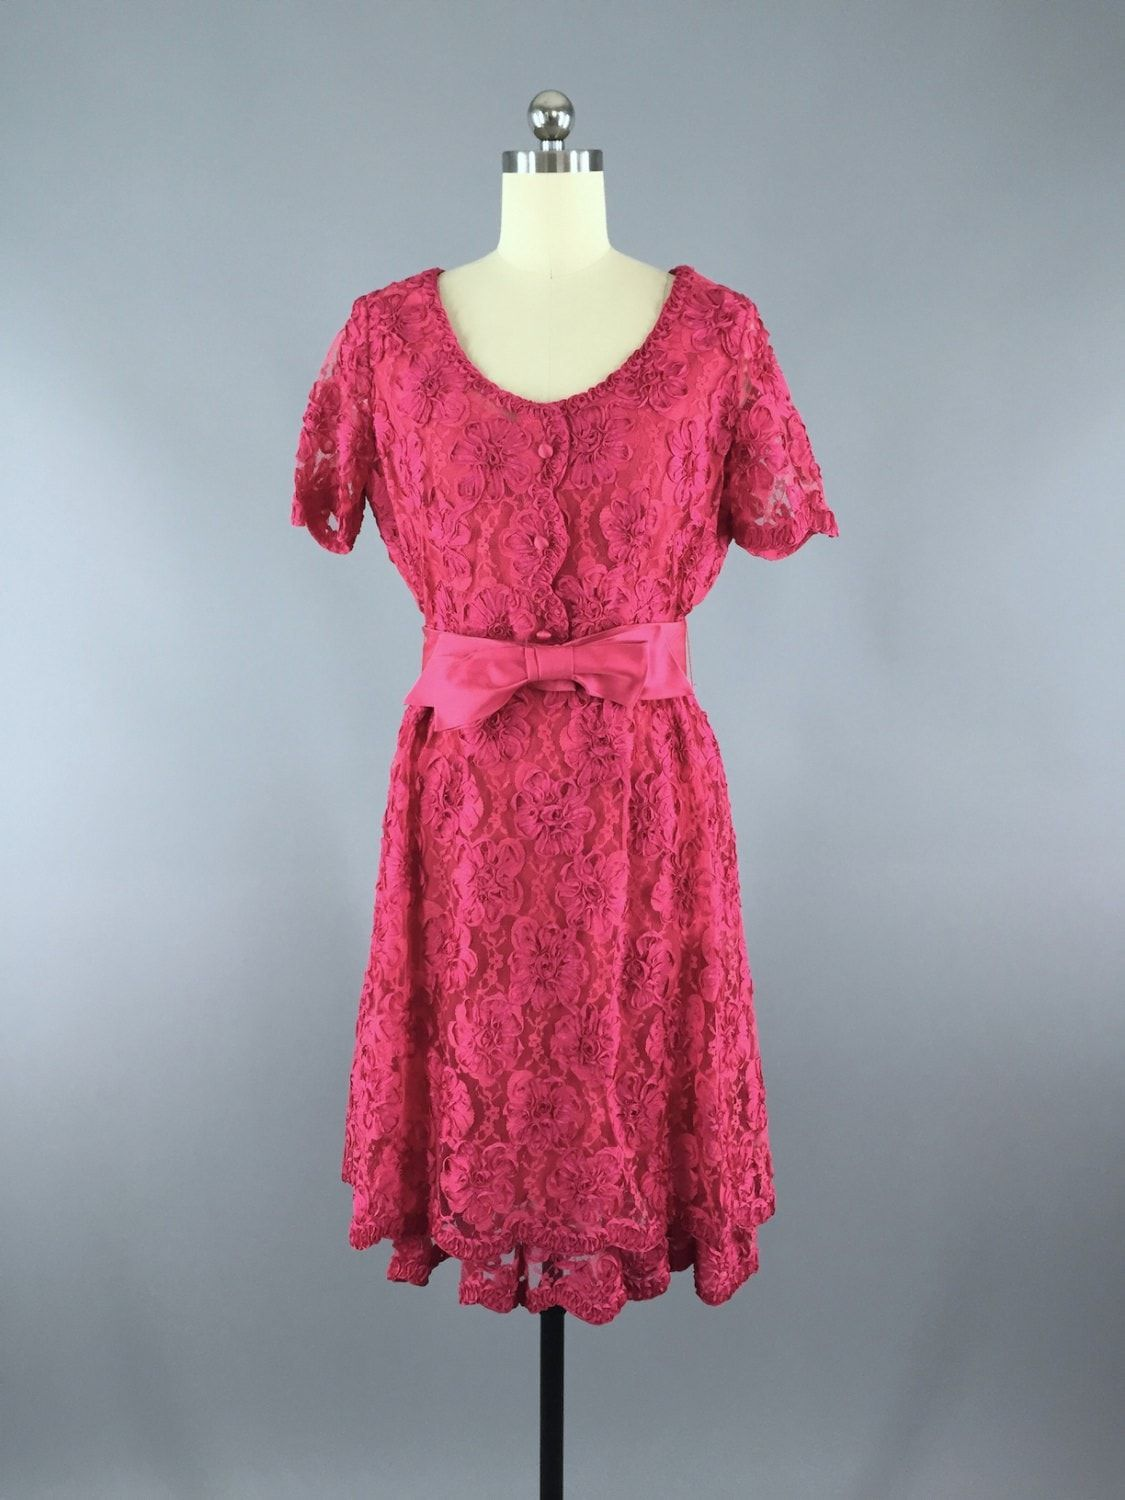 1960s Vintage Pink Lace Dress by Sophisticated Miss